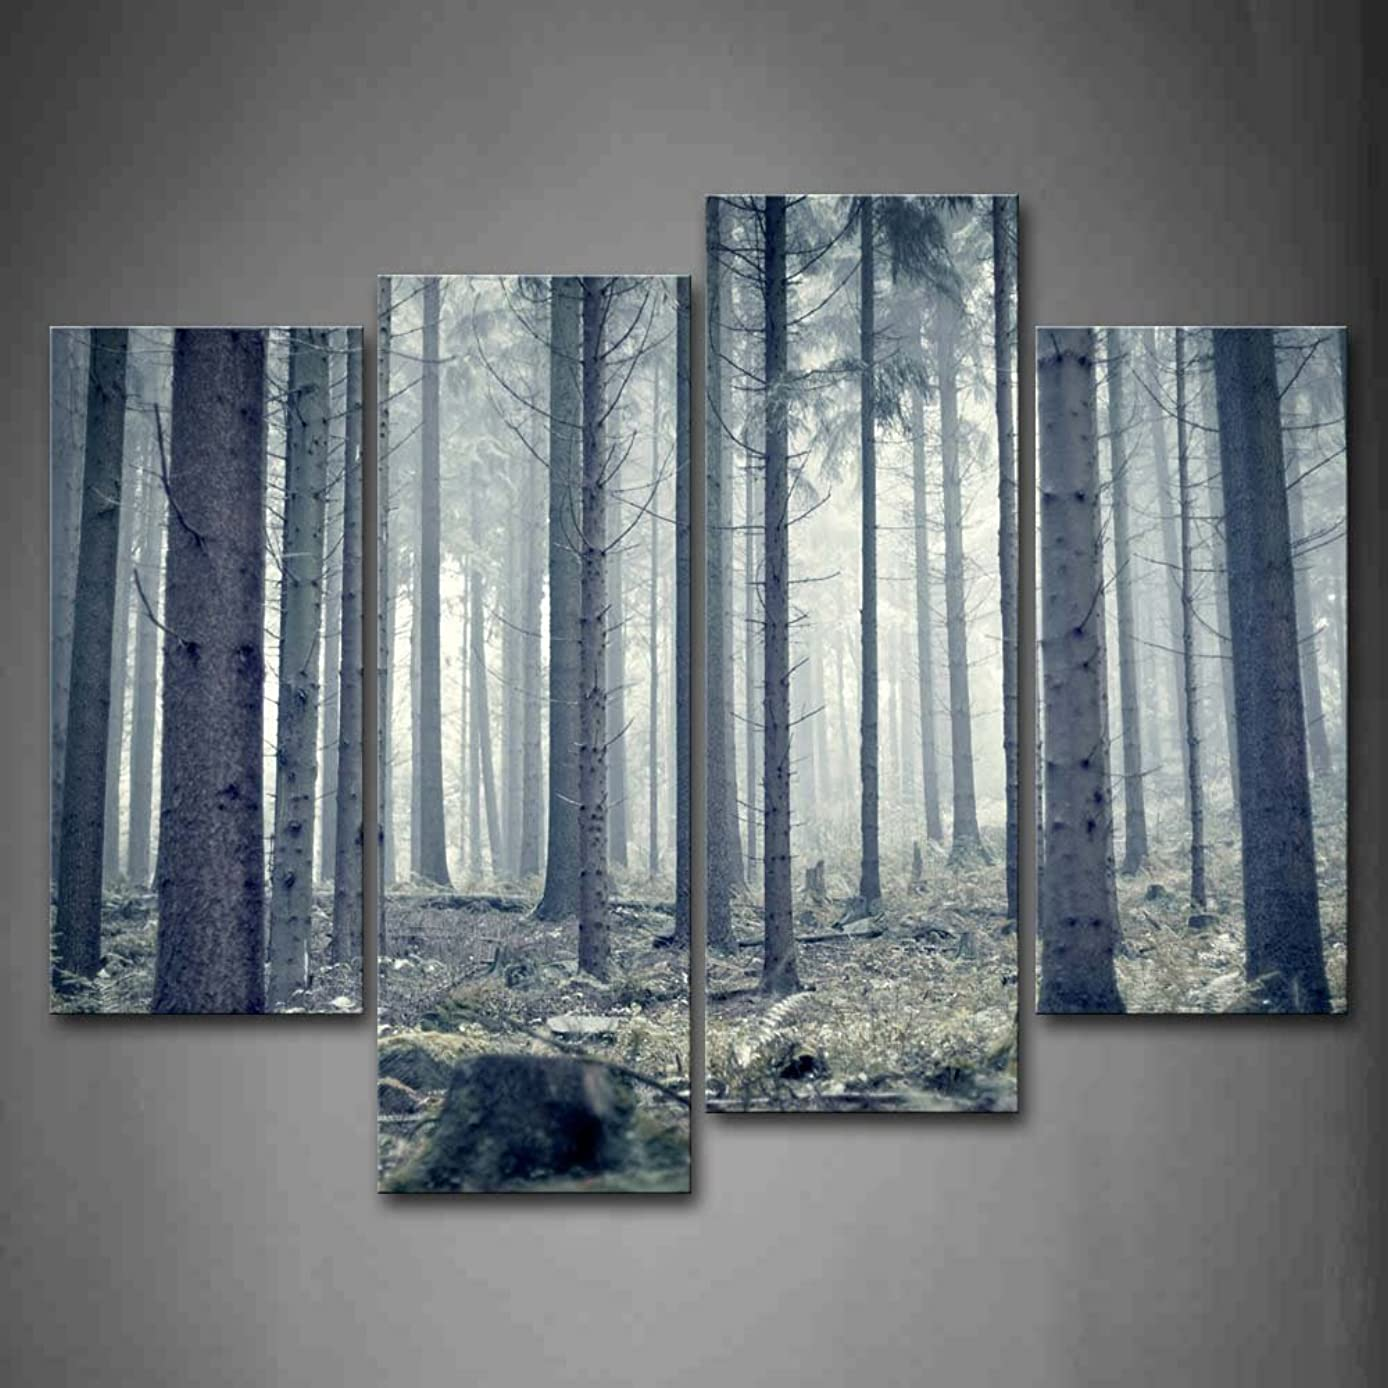 Forest Straight Trees Grass On Land Wall Art Painting The Picture Print On Canvas Landscape Pictures for Home Decor Decoration Gift